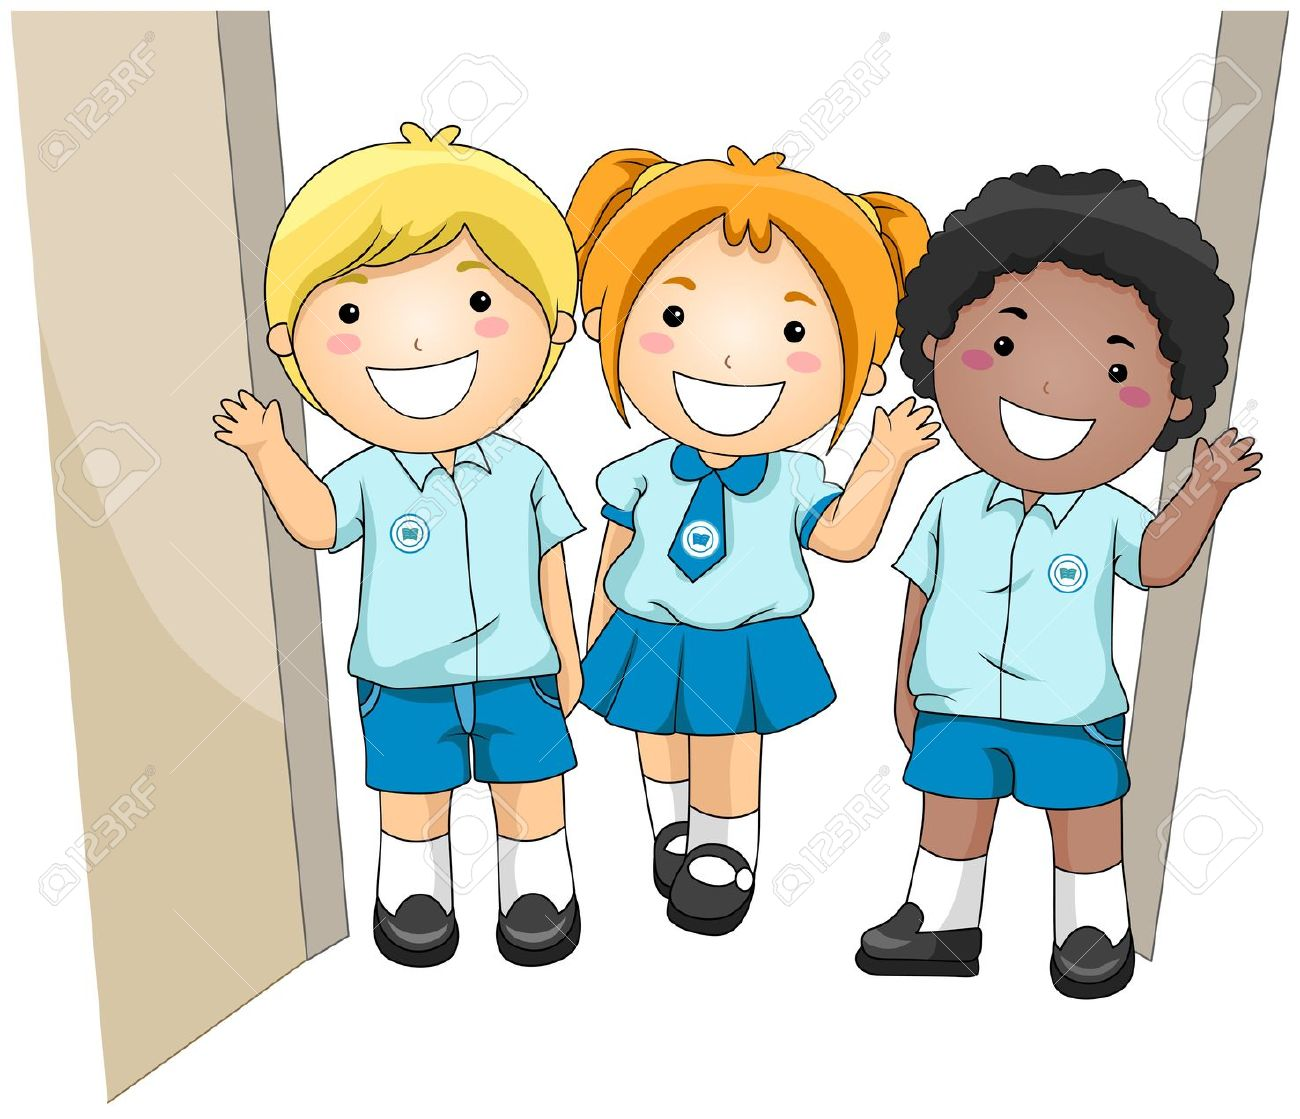 9+ Students Clipart.